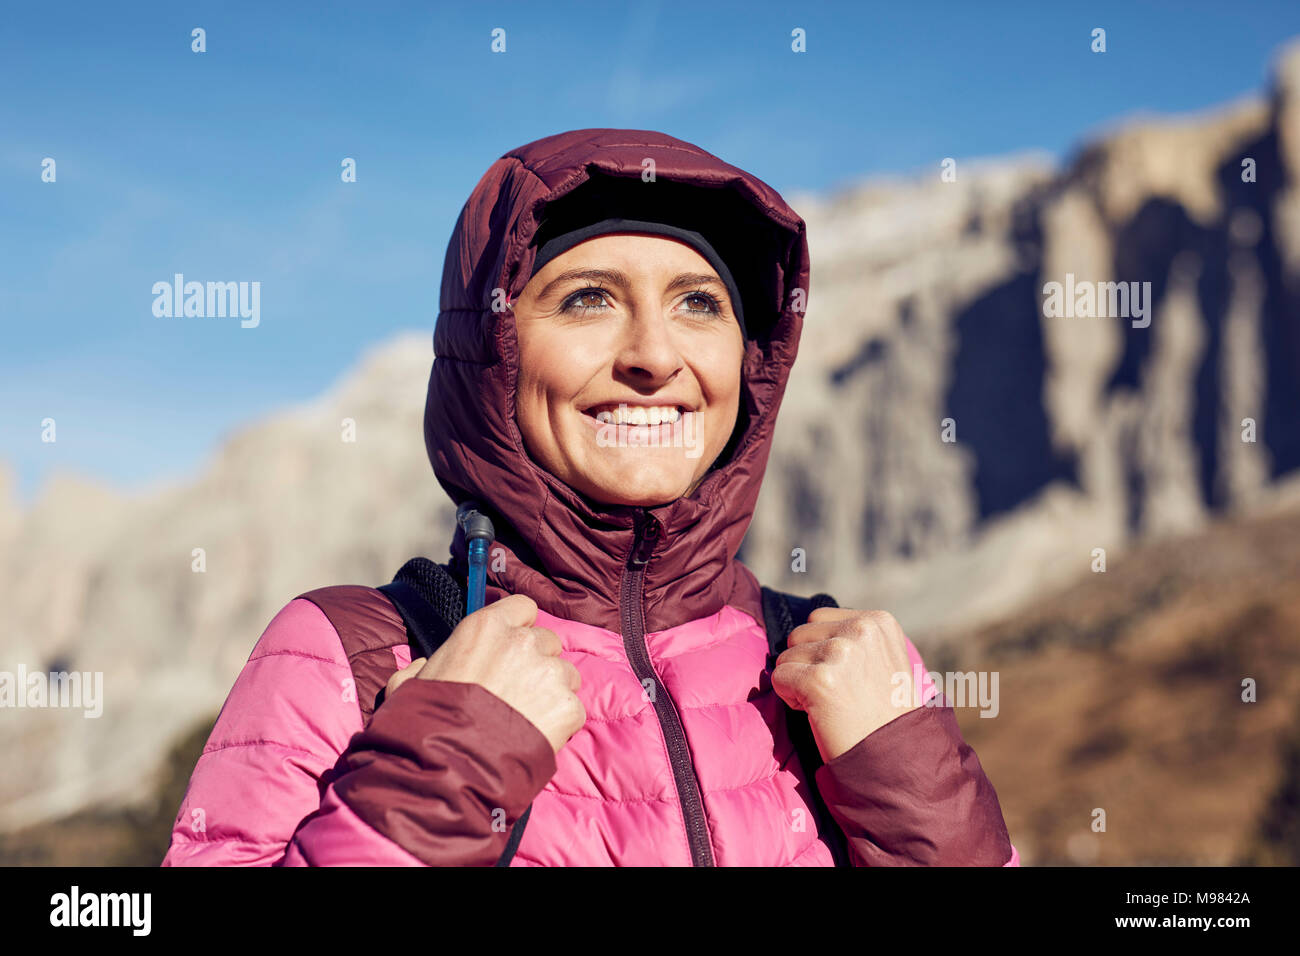 Portrait of confident young woman hiking in the mountains - Stock Image